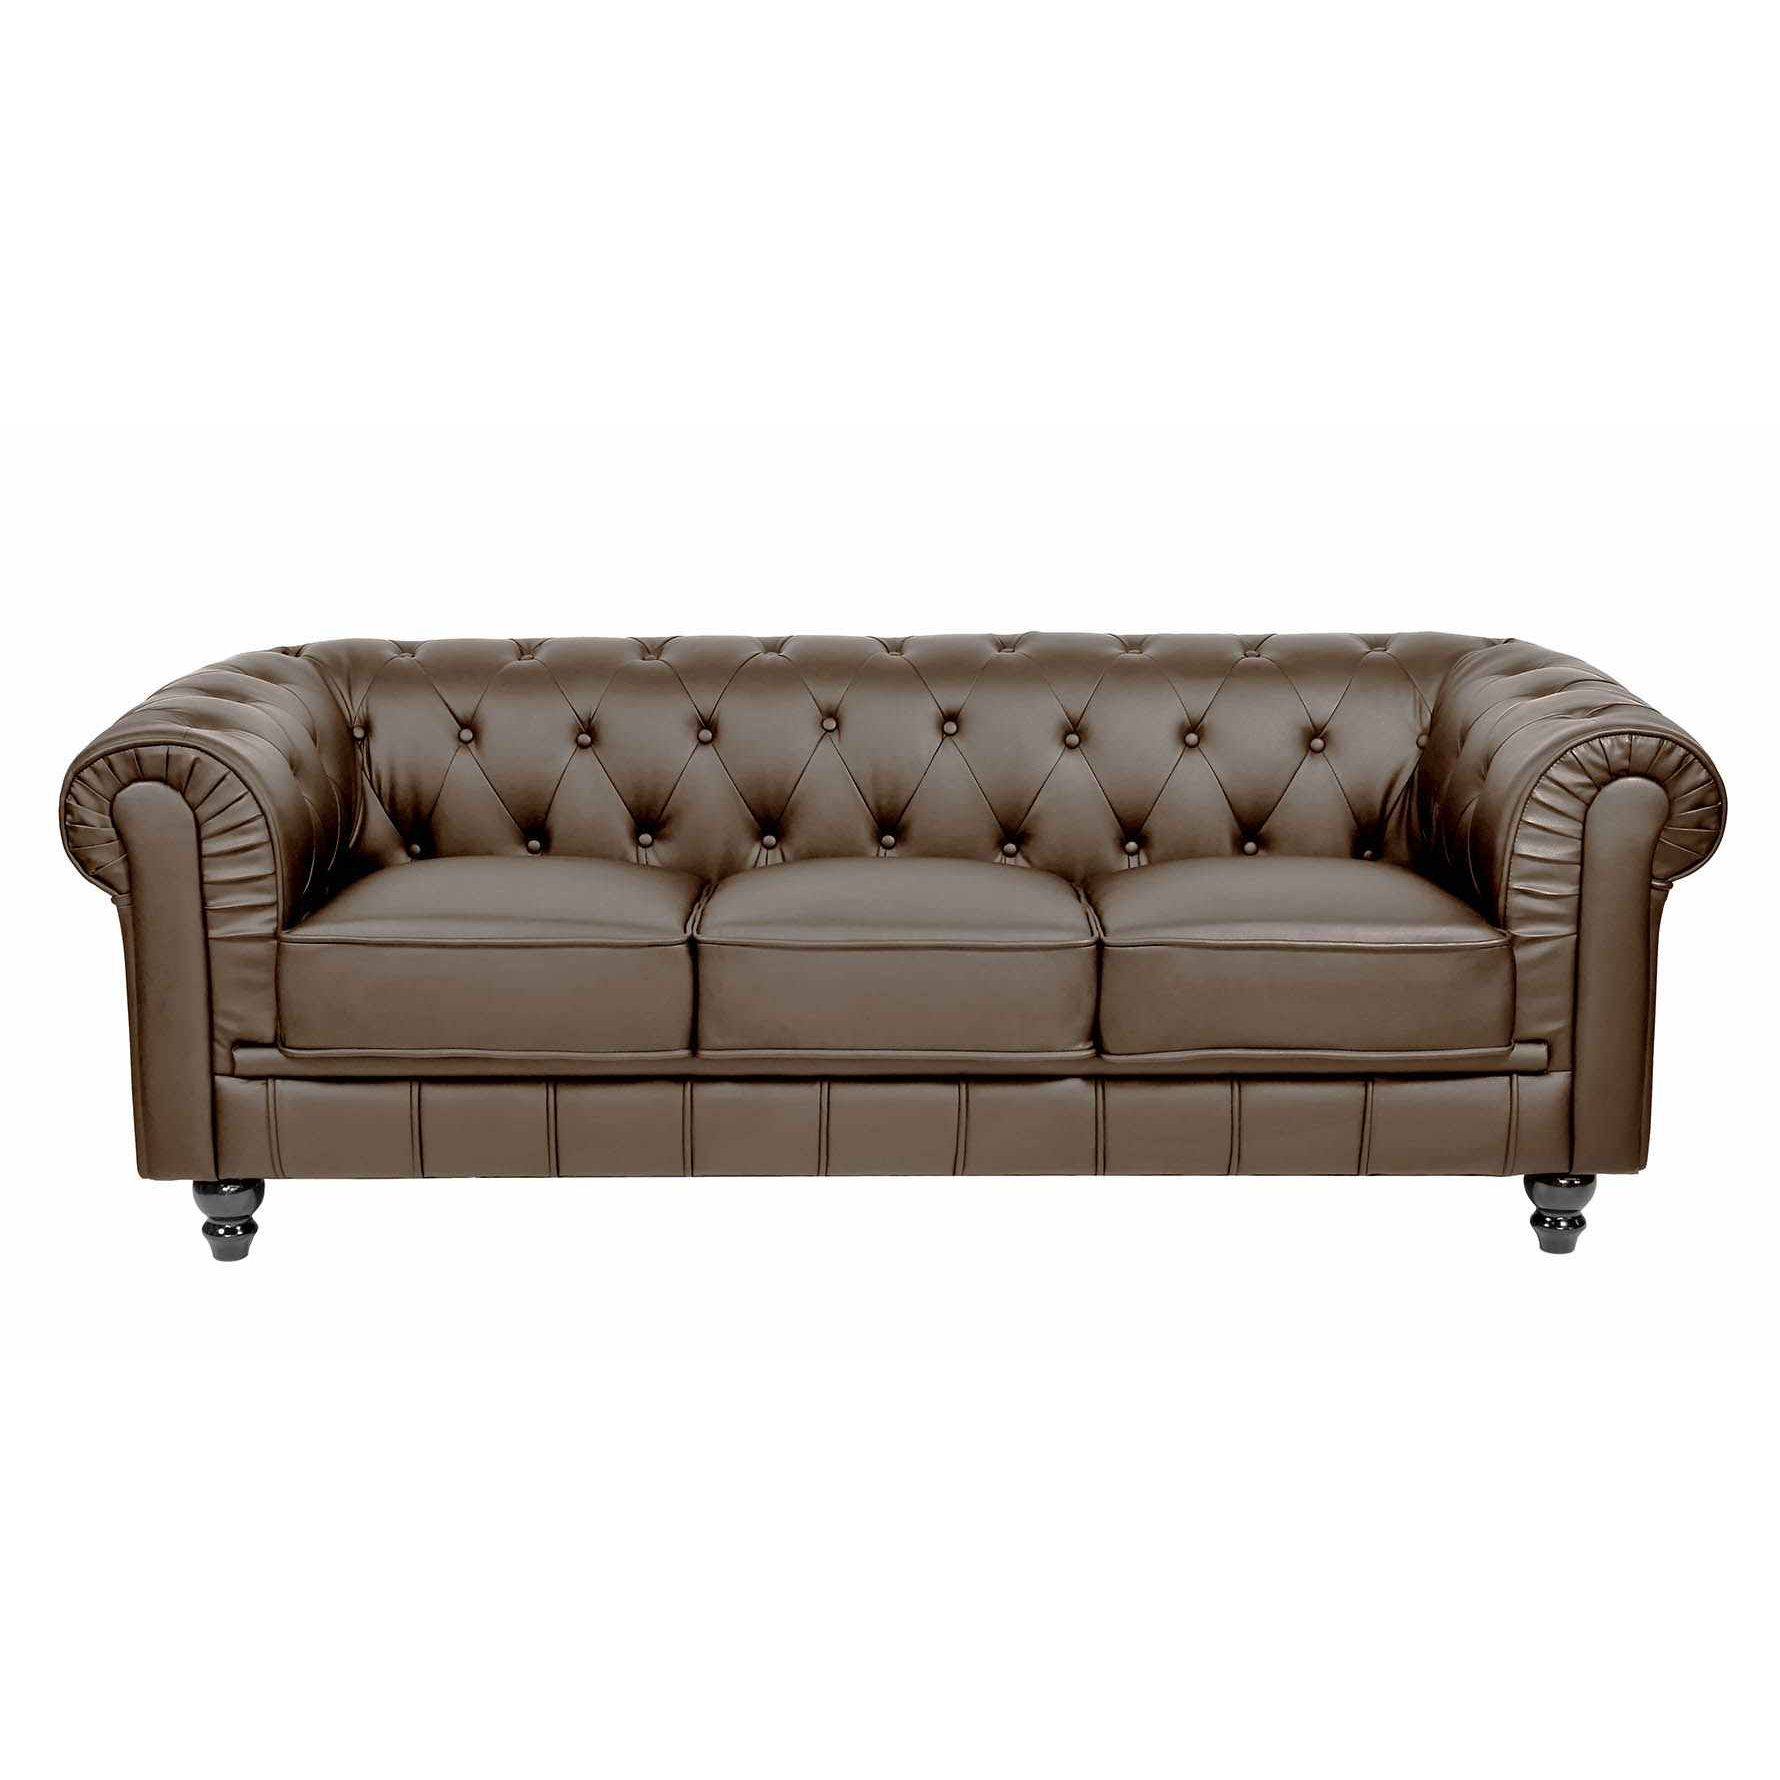 Canapé Chesterfield Patchwork Canapé Chesterfield 3 Places